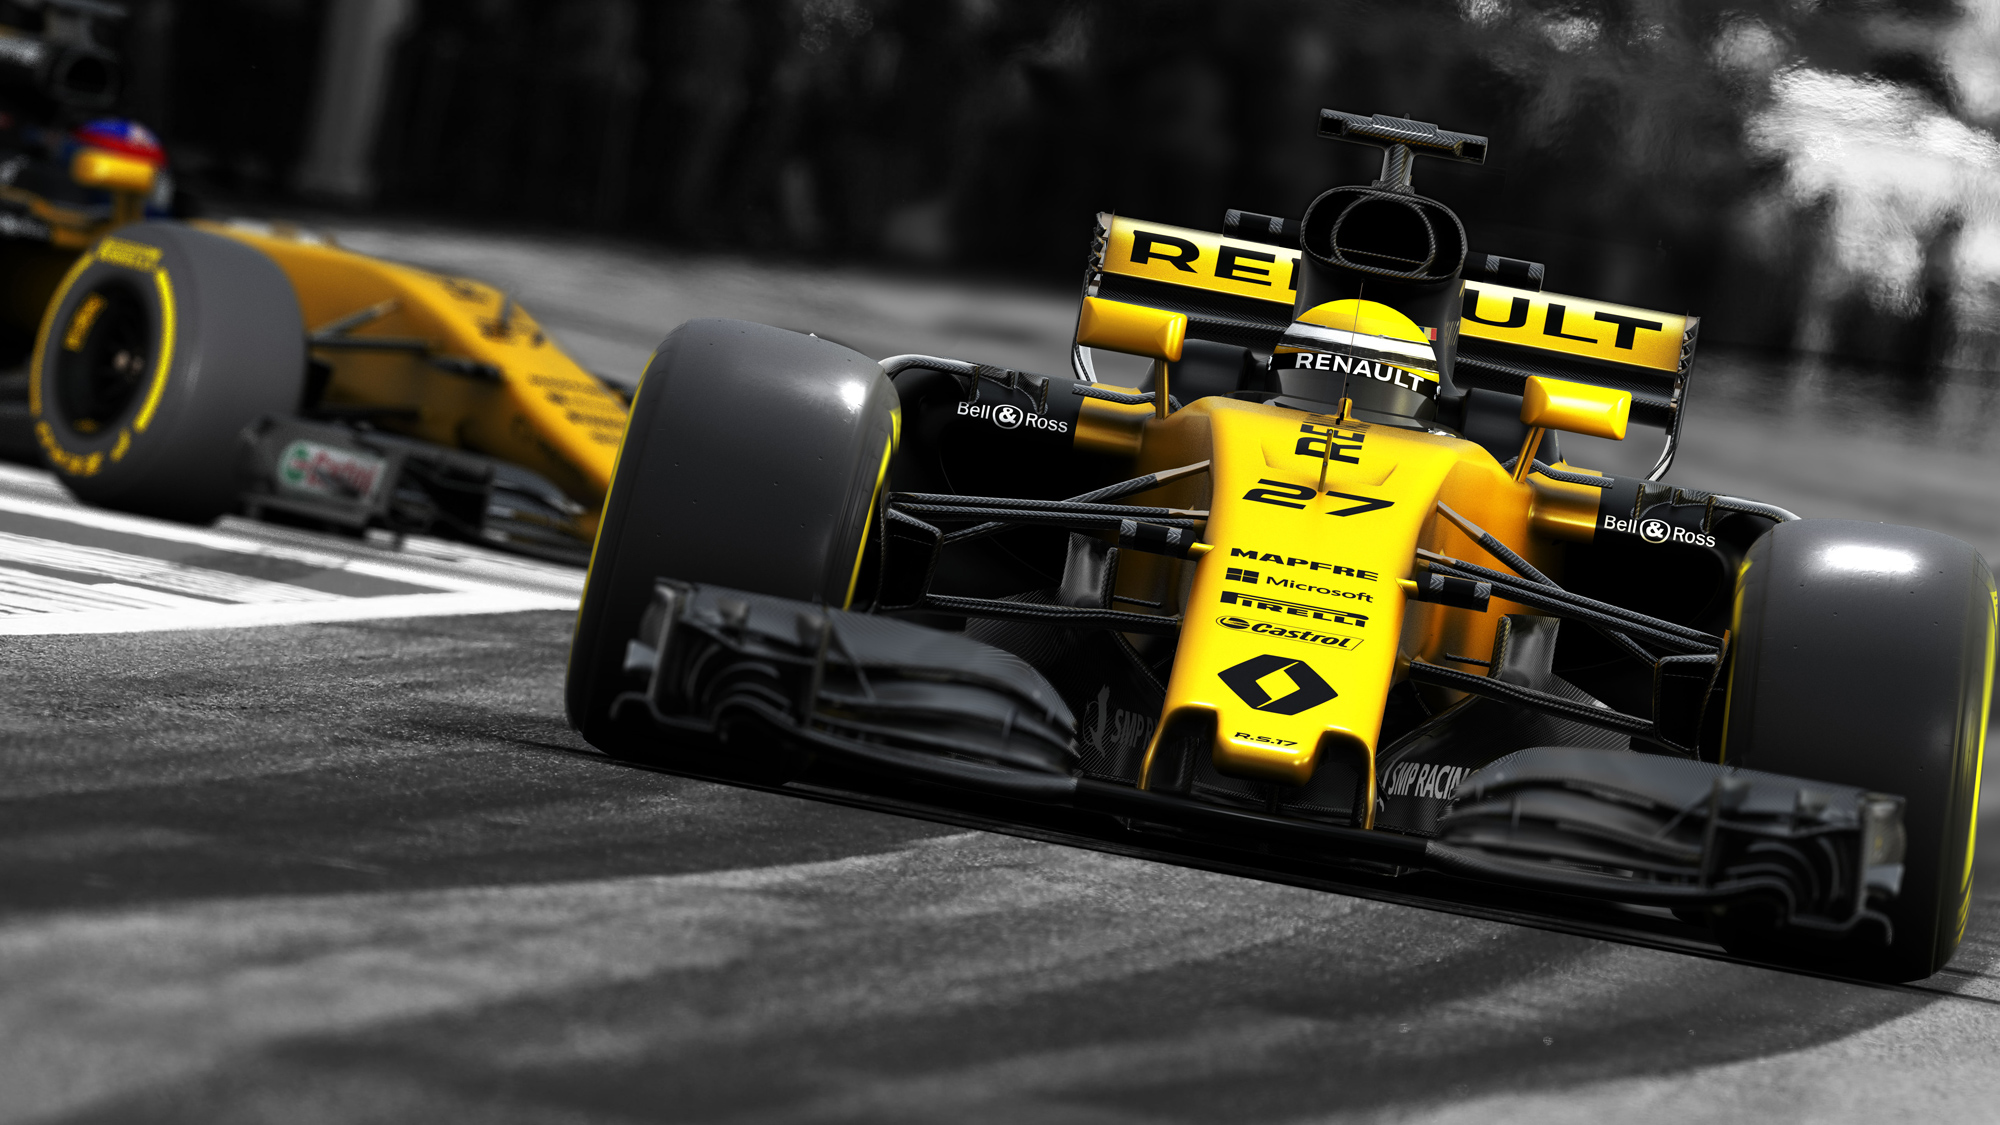 Renault-Sport-Formula-1-Photoscene-Action-1.jpg